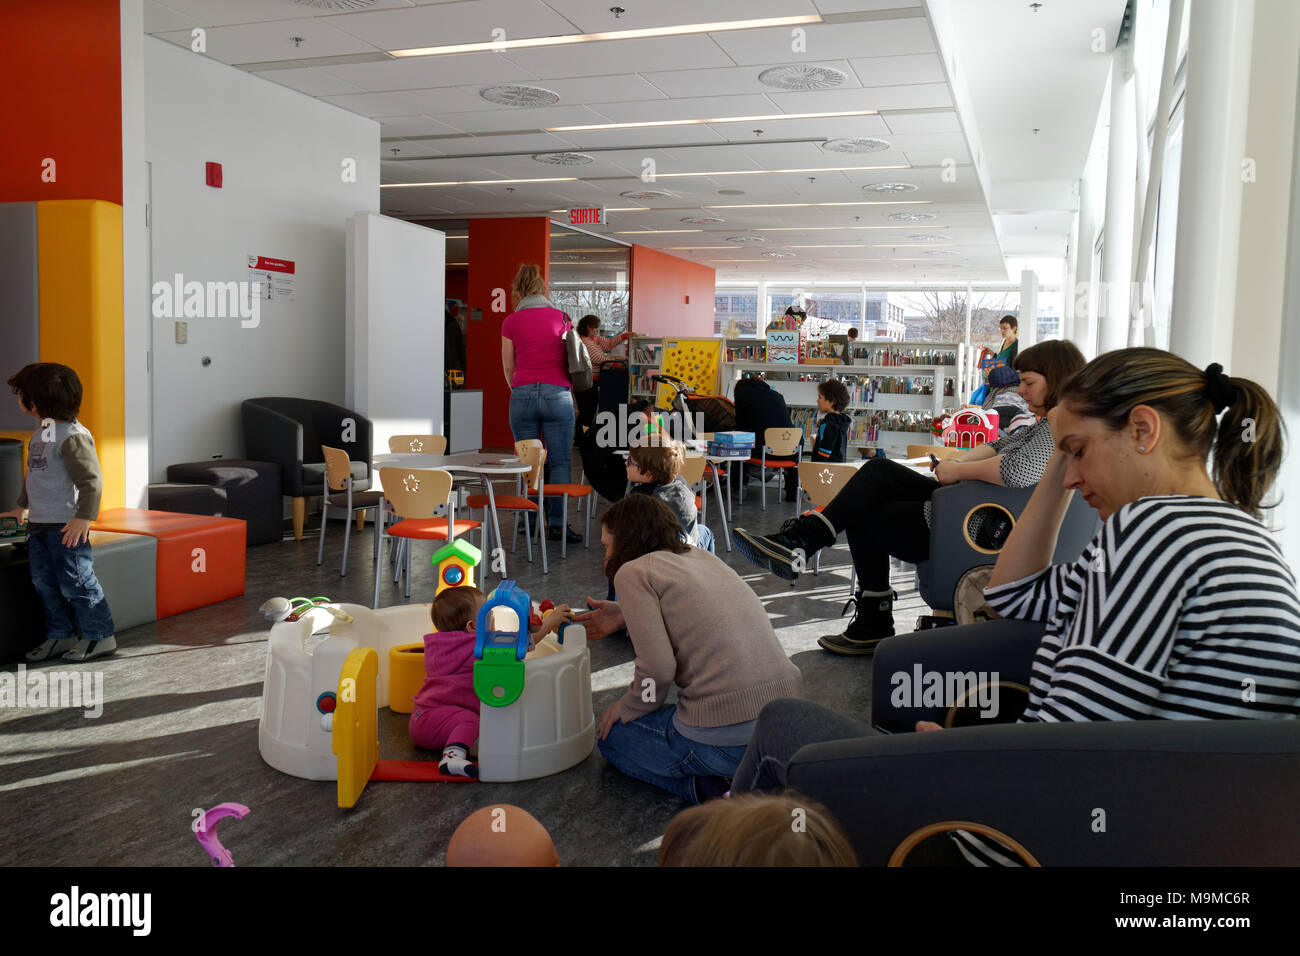 Mums with their children in a play area inside a public library in Quebec City, Canada - Stock Image